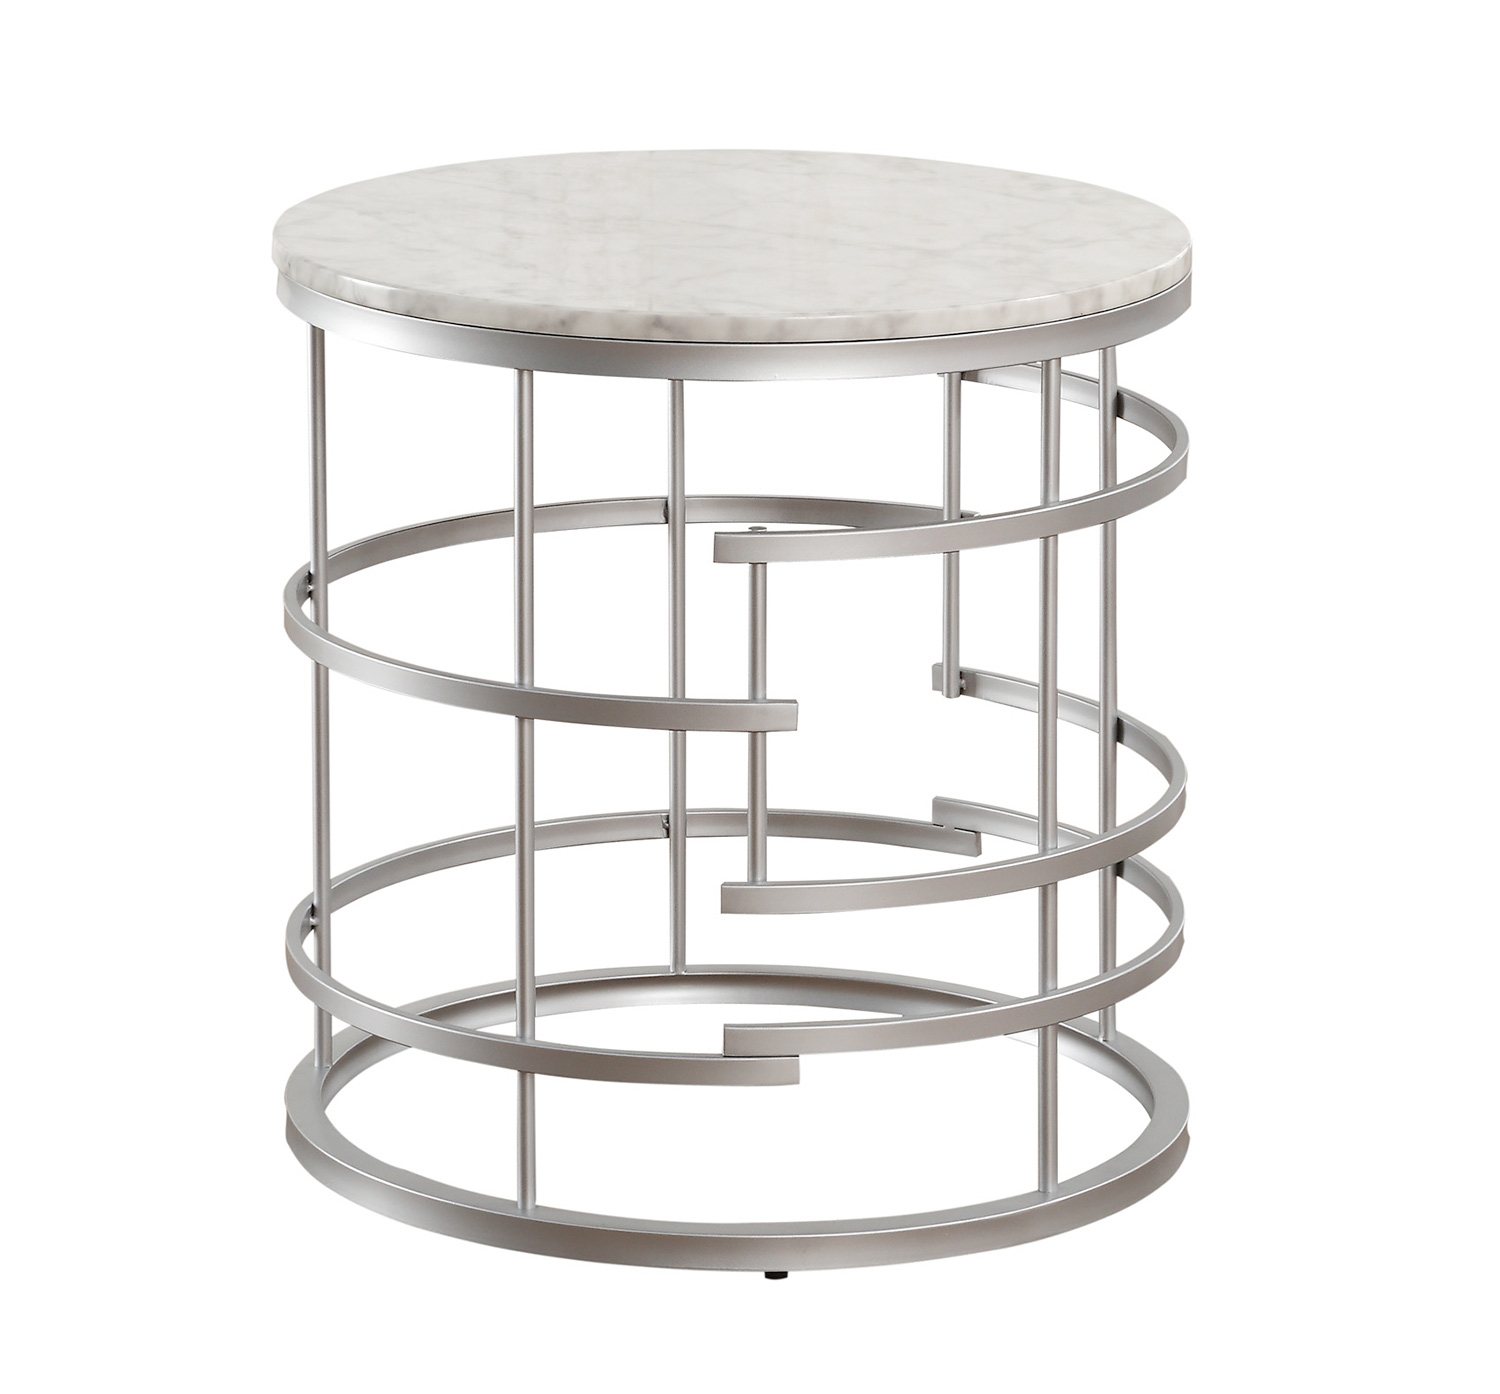 Homelegance Brassica Round End Table with Faux Marble Top - Silver - White Marble Top